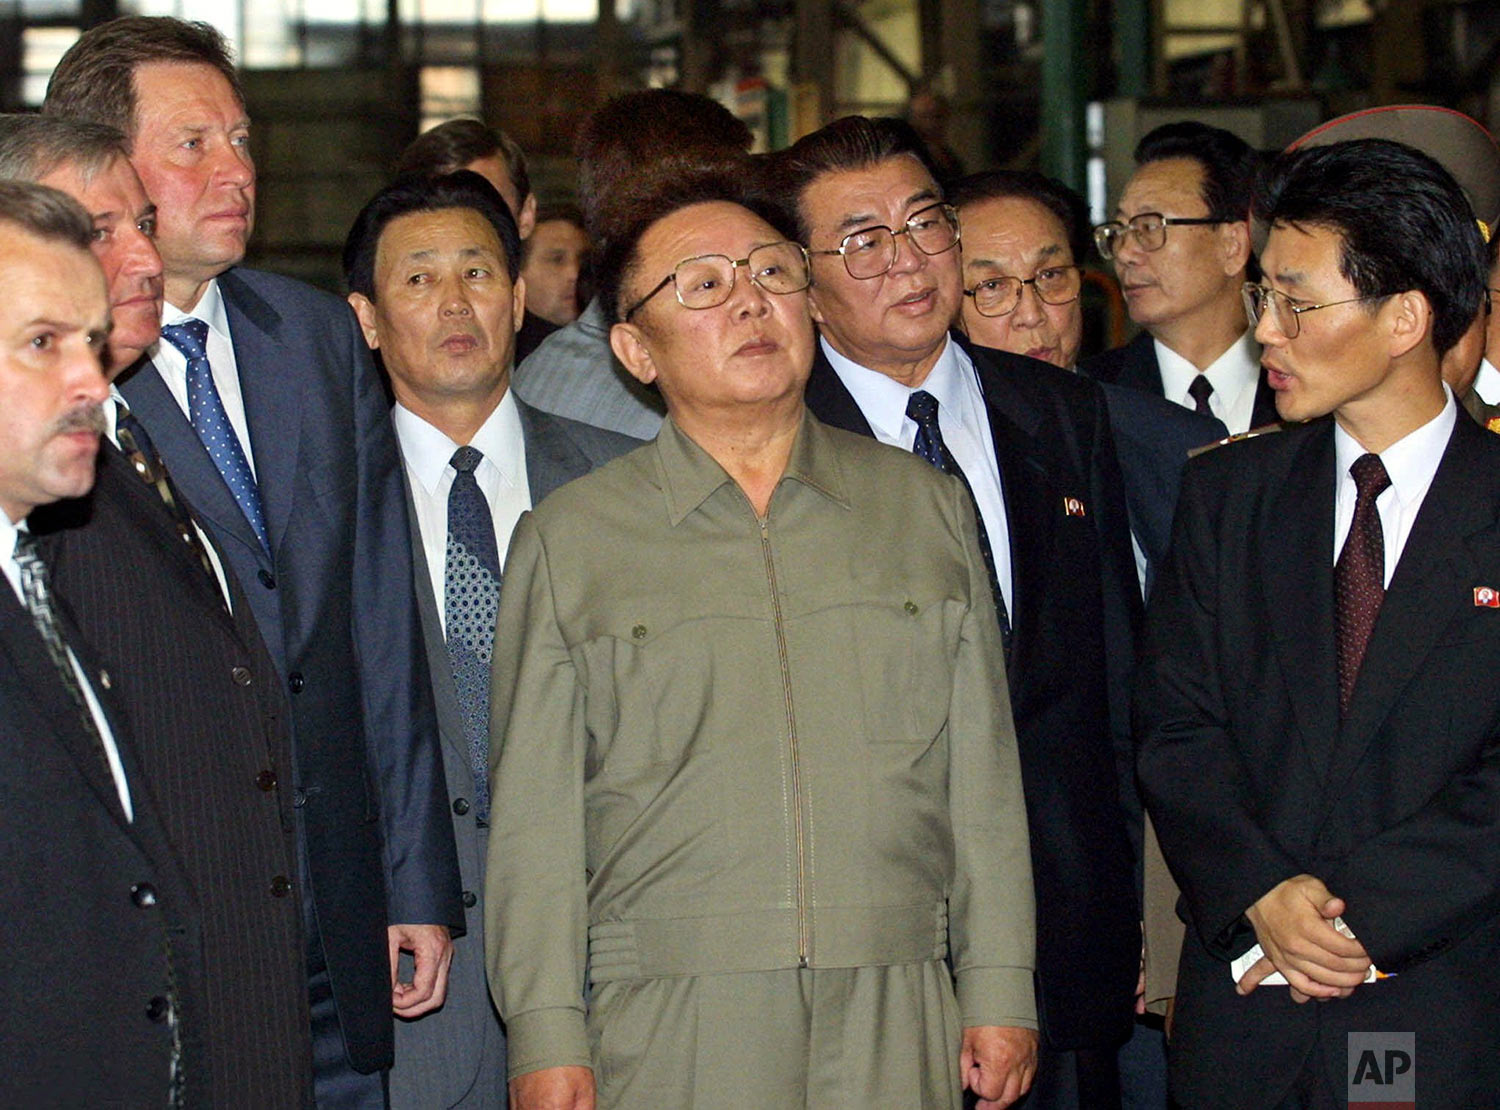 North Korean leader Kim Jong Il, center, examines the rotor for Iran's Busher nuclear power station at the Leningradsky Metal Factory in St. Petersburg, Russia, on Aug. 6, 2001. (AP Photo/Dmitry Lovetsky, Pool)